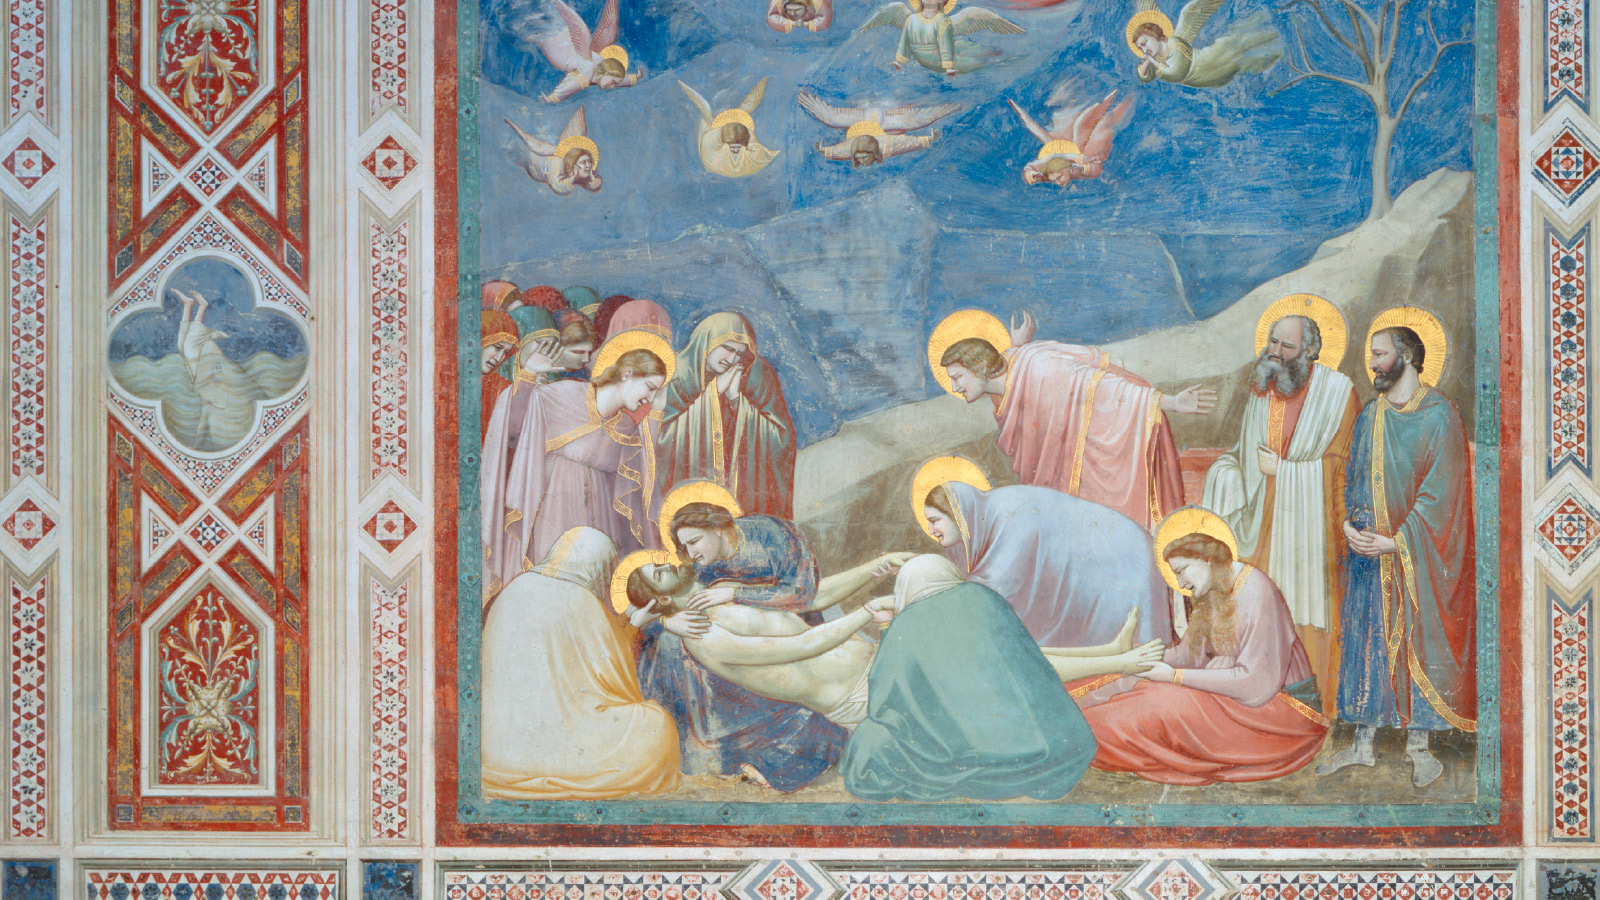 Giotto's <i>Lamentation</i> (1305-1306 painting